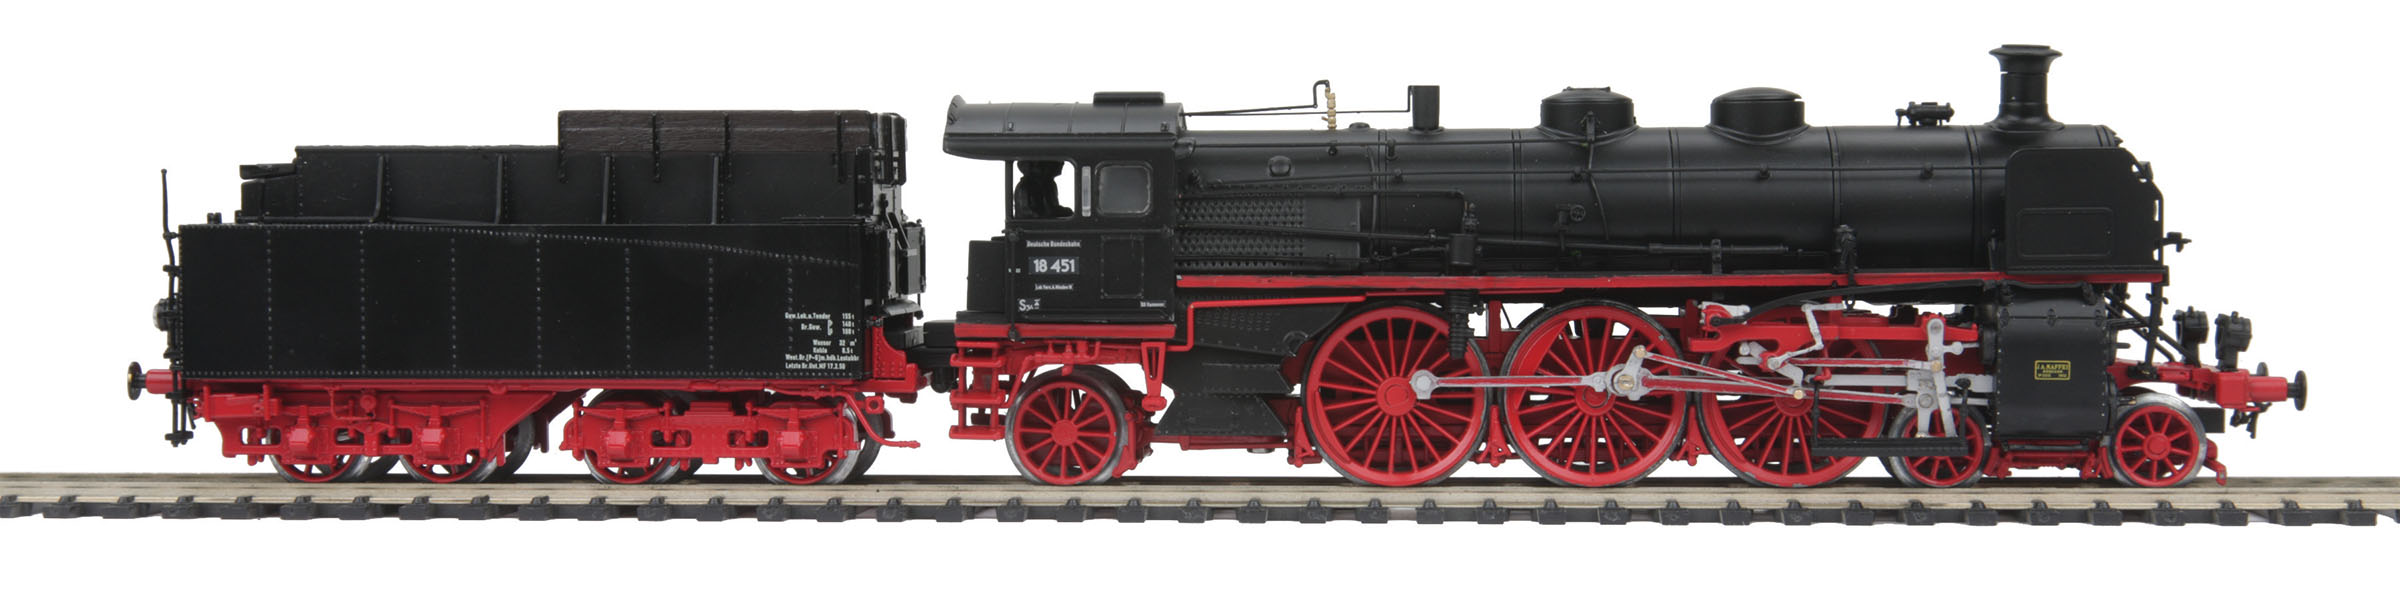 HO Scale MTH HO Class 18.4 Steam Locomotive w/Proto-Sound 3.0